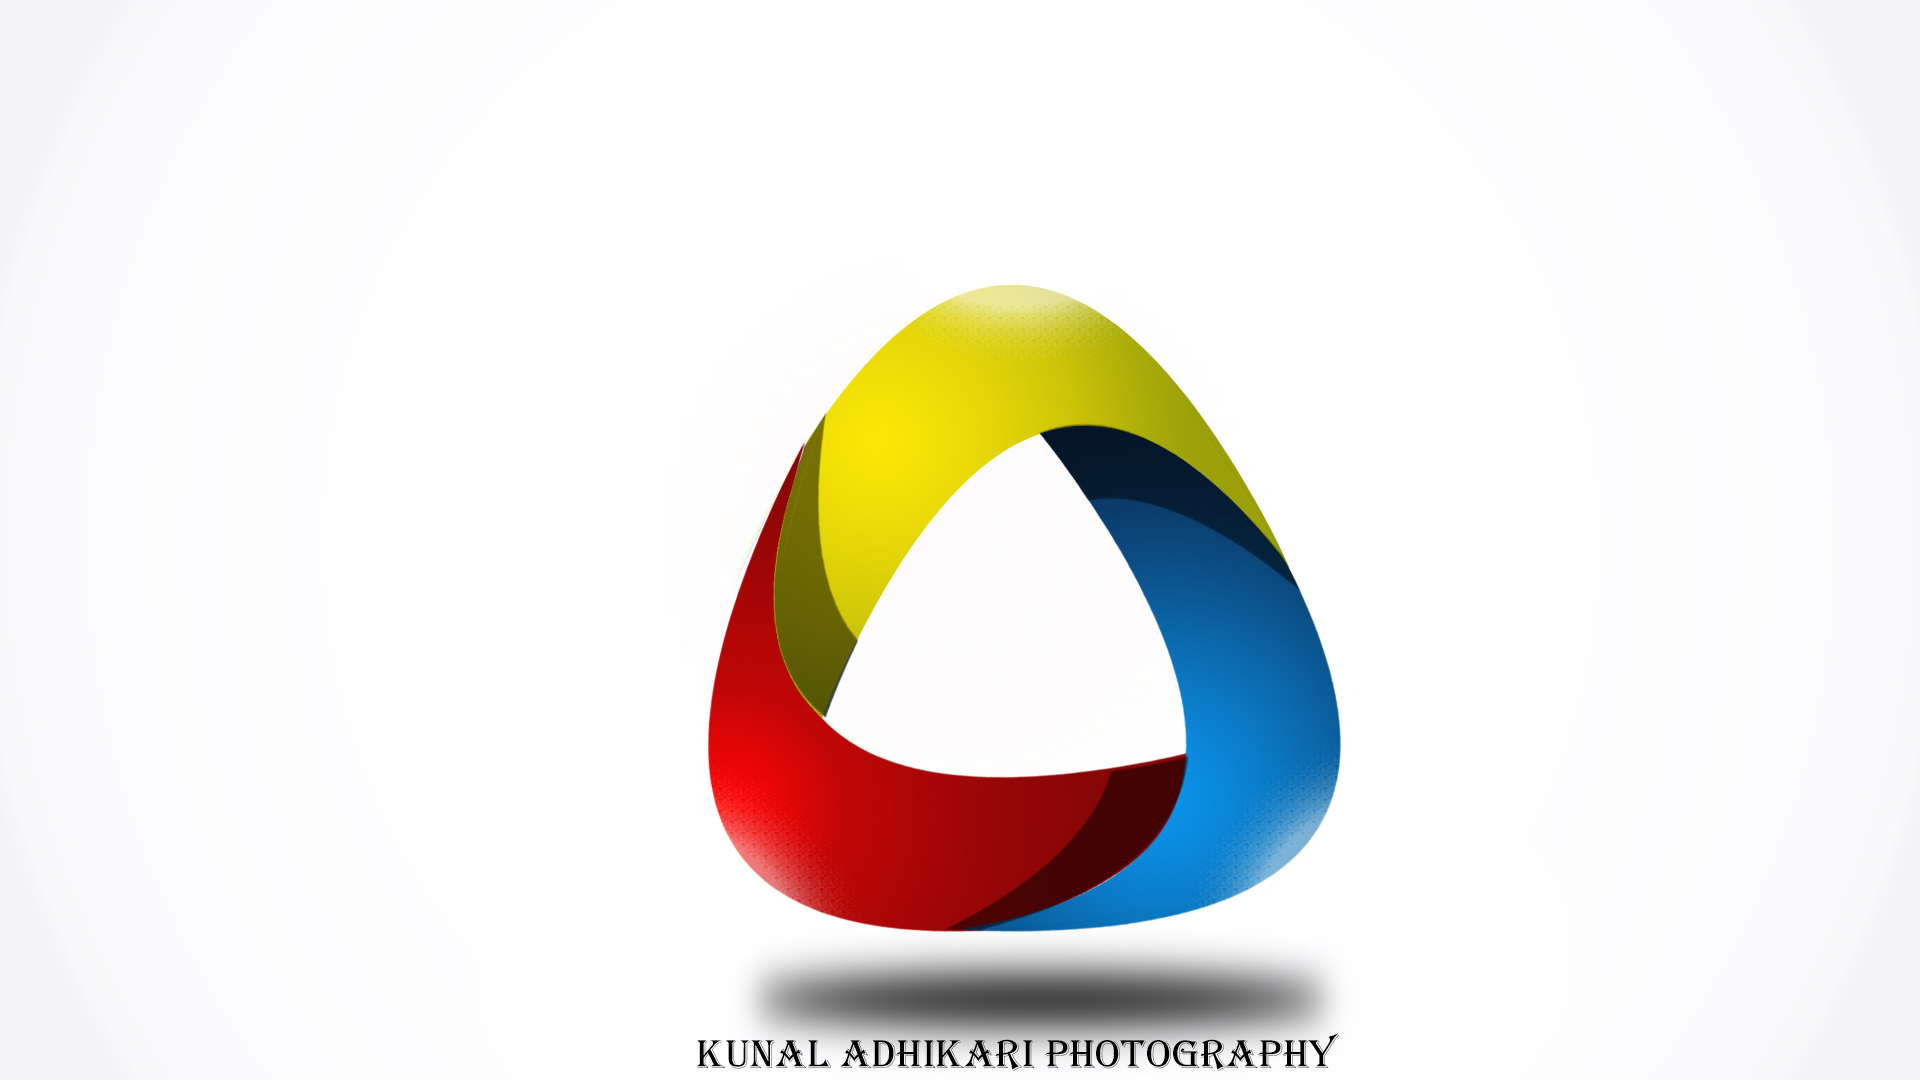 Kunal Adhikari Photography